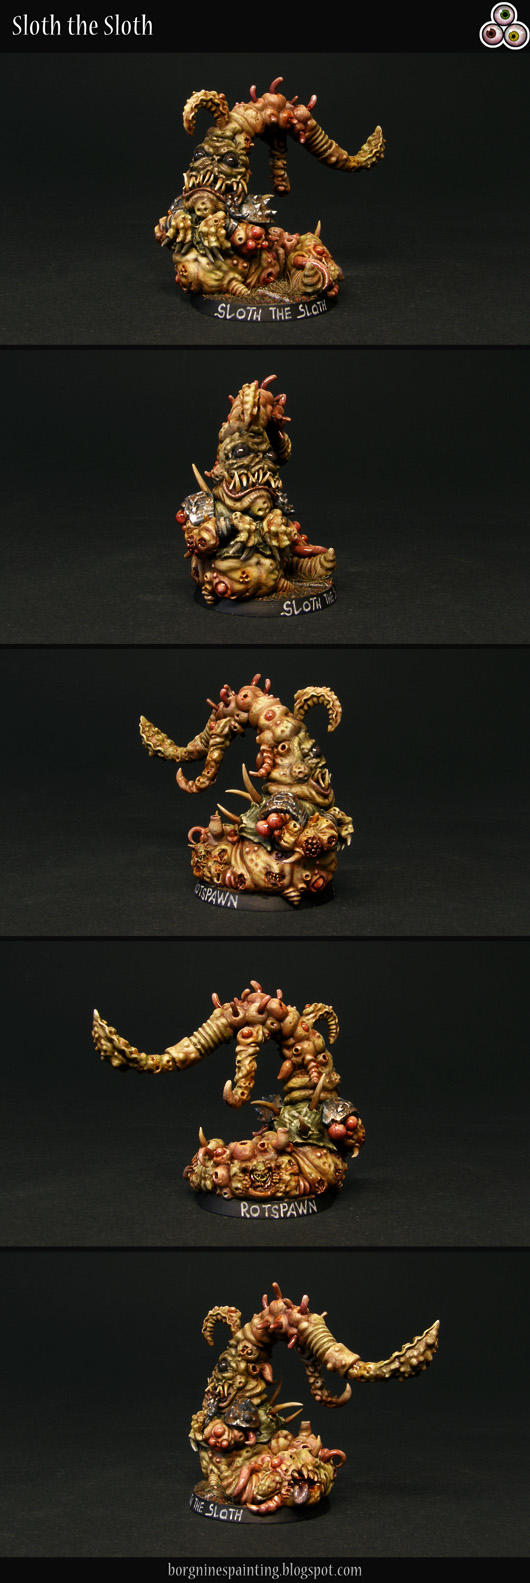 A scratchbuilt, painted miniature of a Rotspawn / Beast of Nurgle for Blood Bowl - made out of green stuff, with small conversion bits added. It has a wrinkly face with beady eyes, resembling a pug and a long tentacle sticking out from the head - everything with all matter of Nurgly boils, pustules and wounds. Its body is pale yellow, with added hues of green and red for variation. The miniature is visible from several angles.